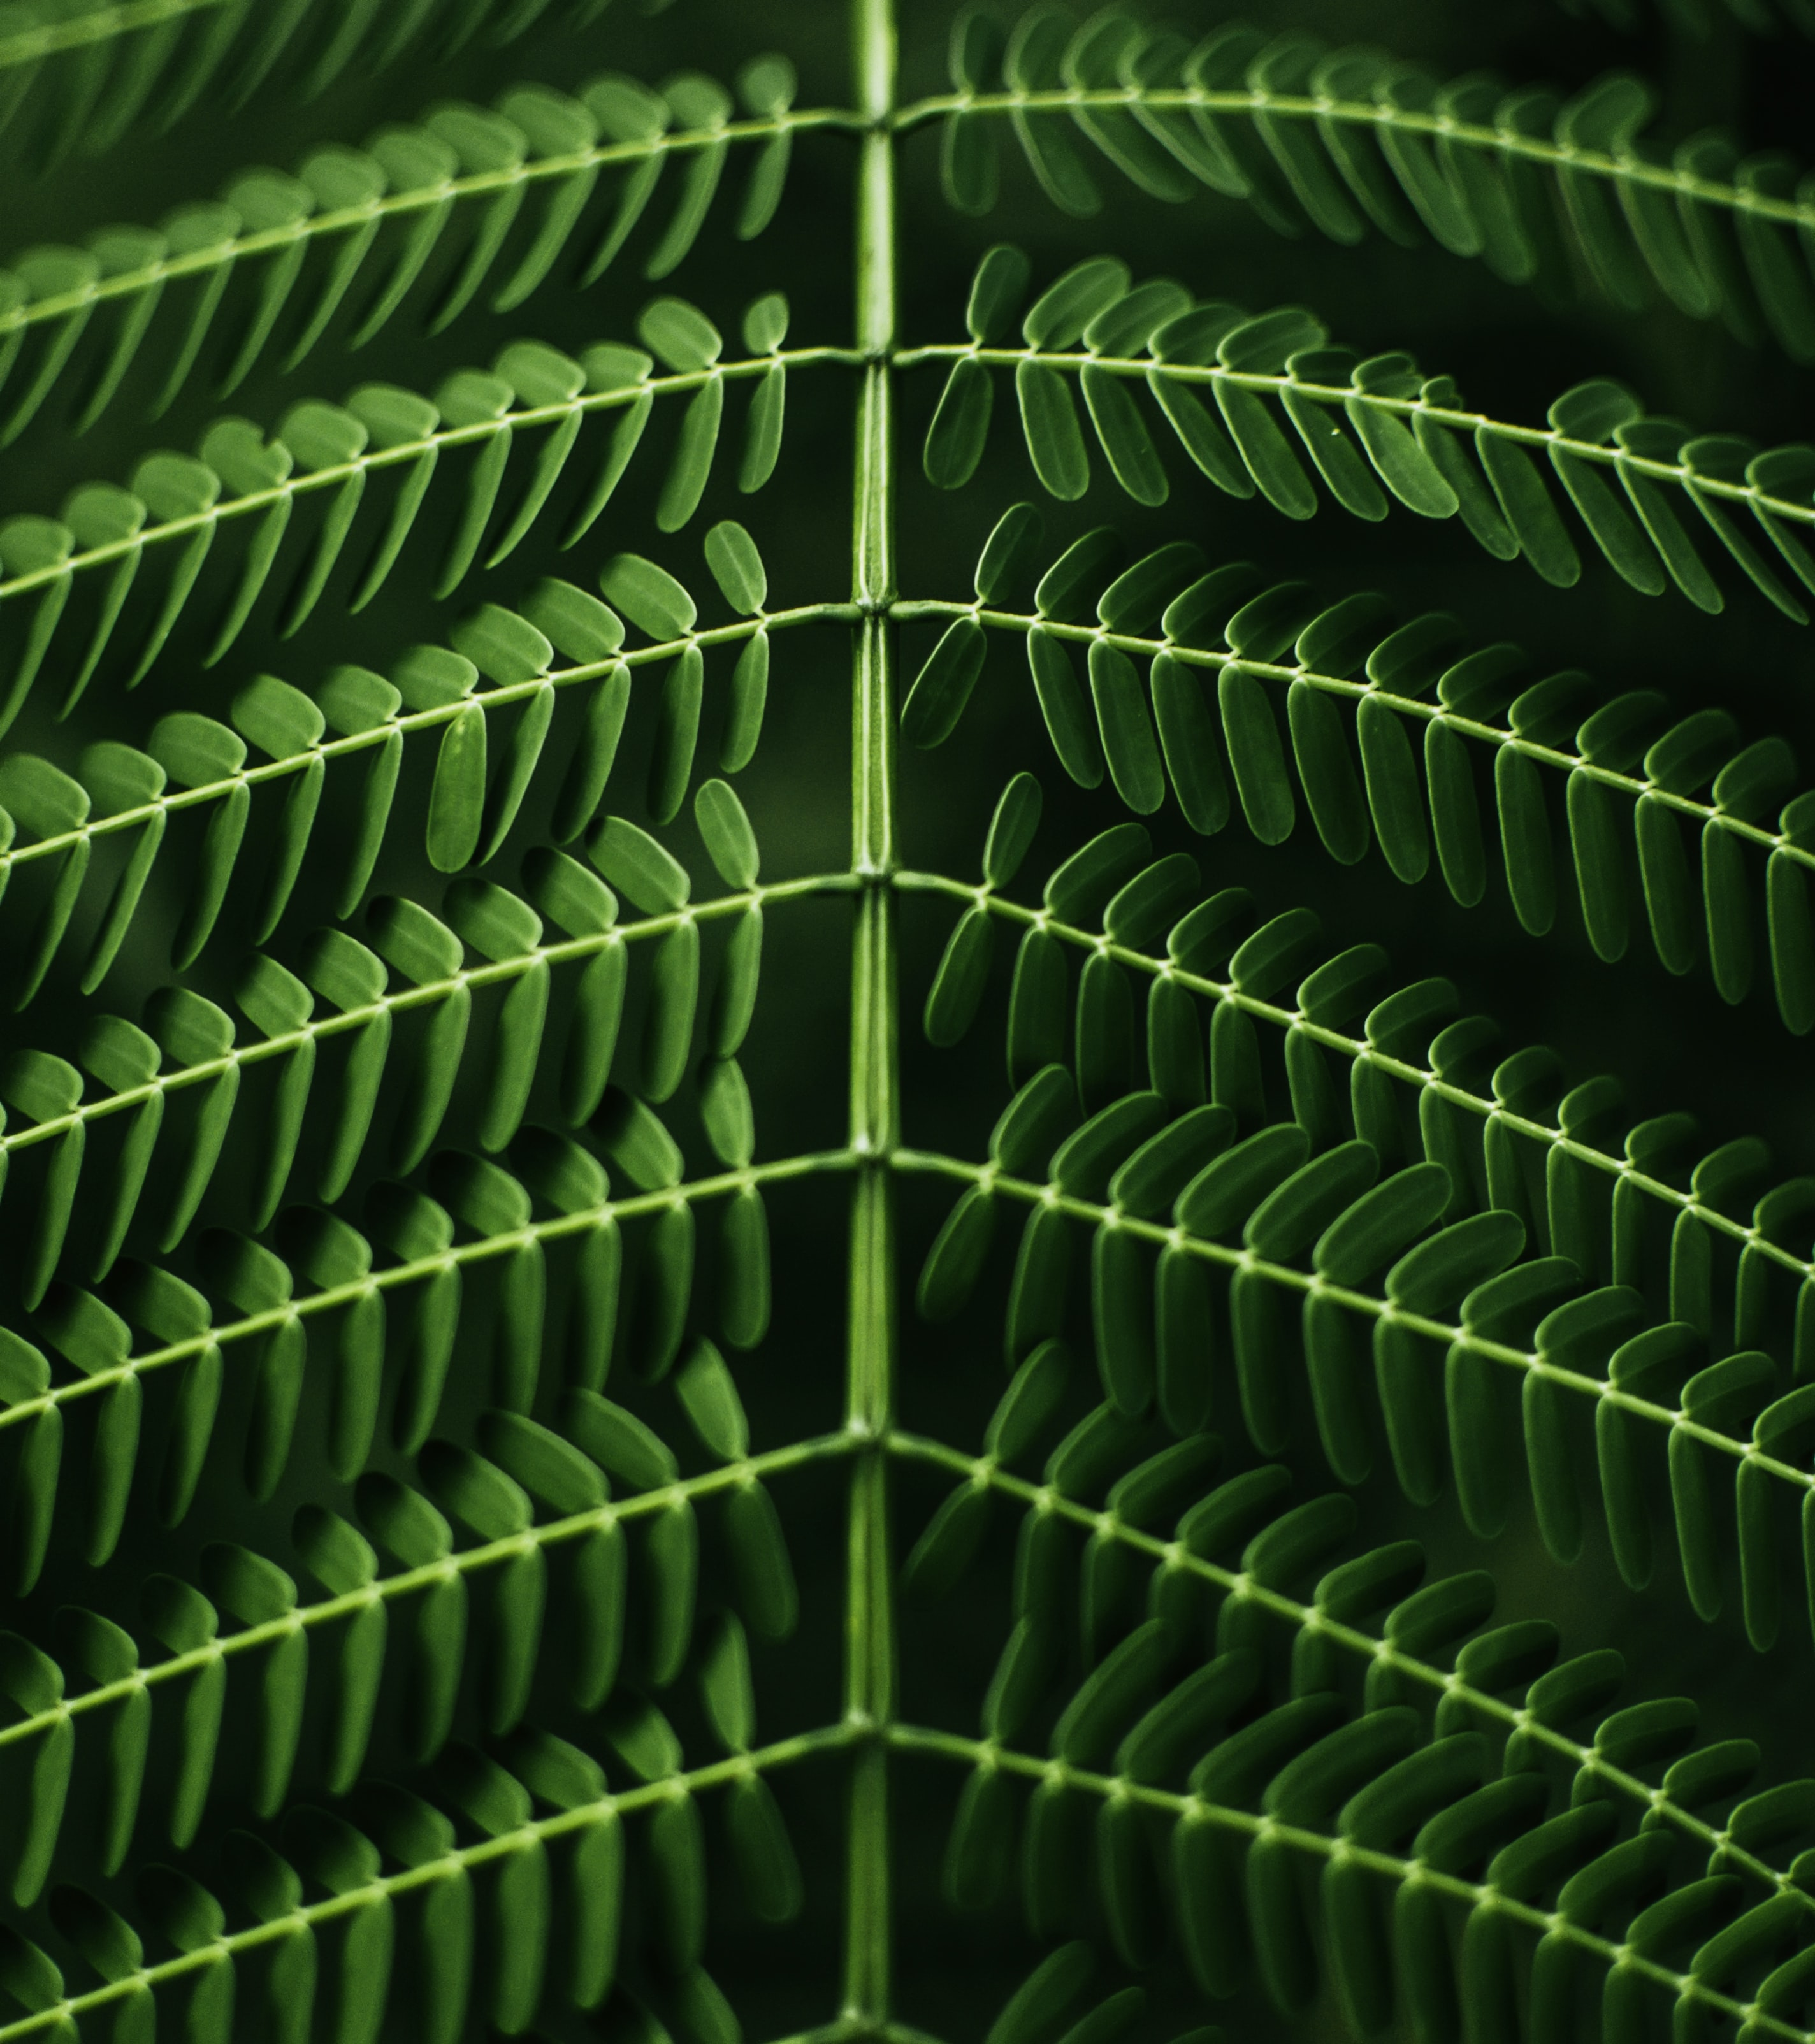 macro photography of green leafed plant